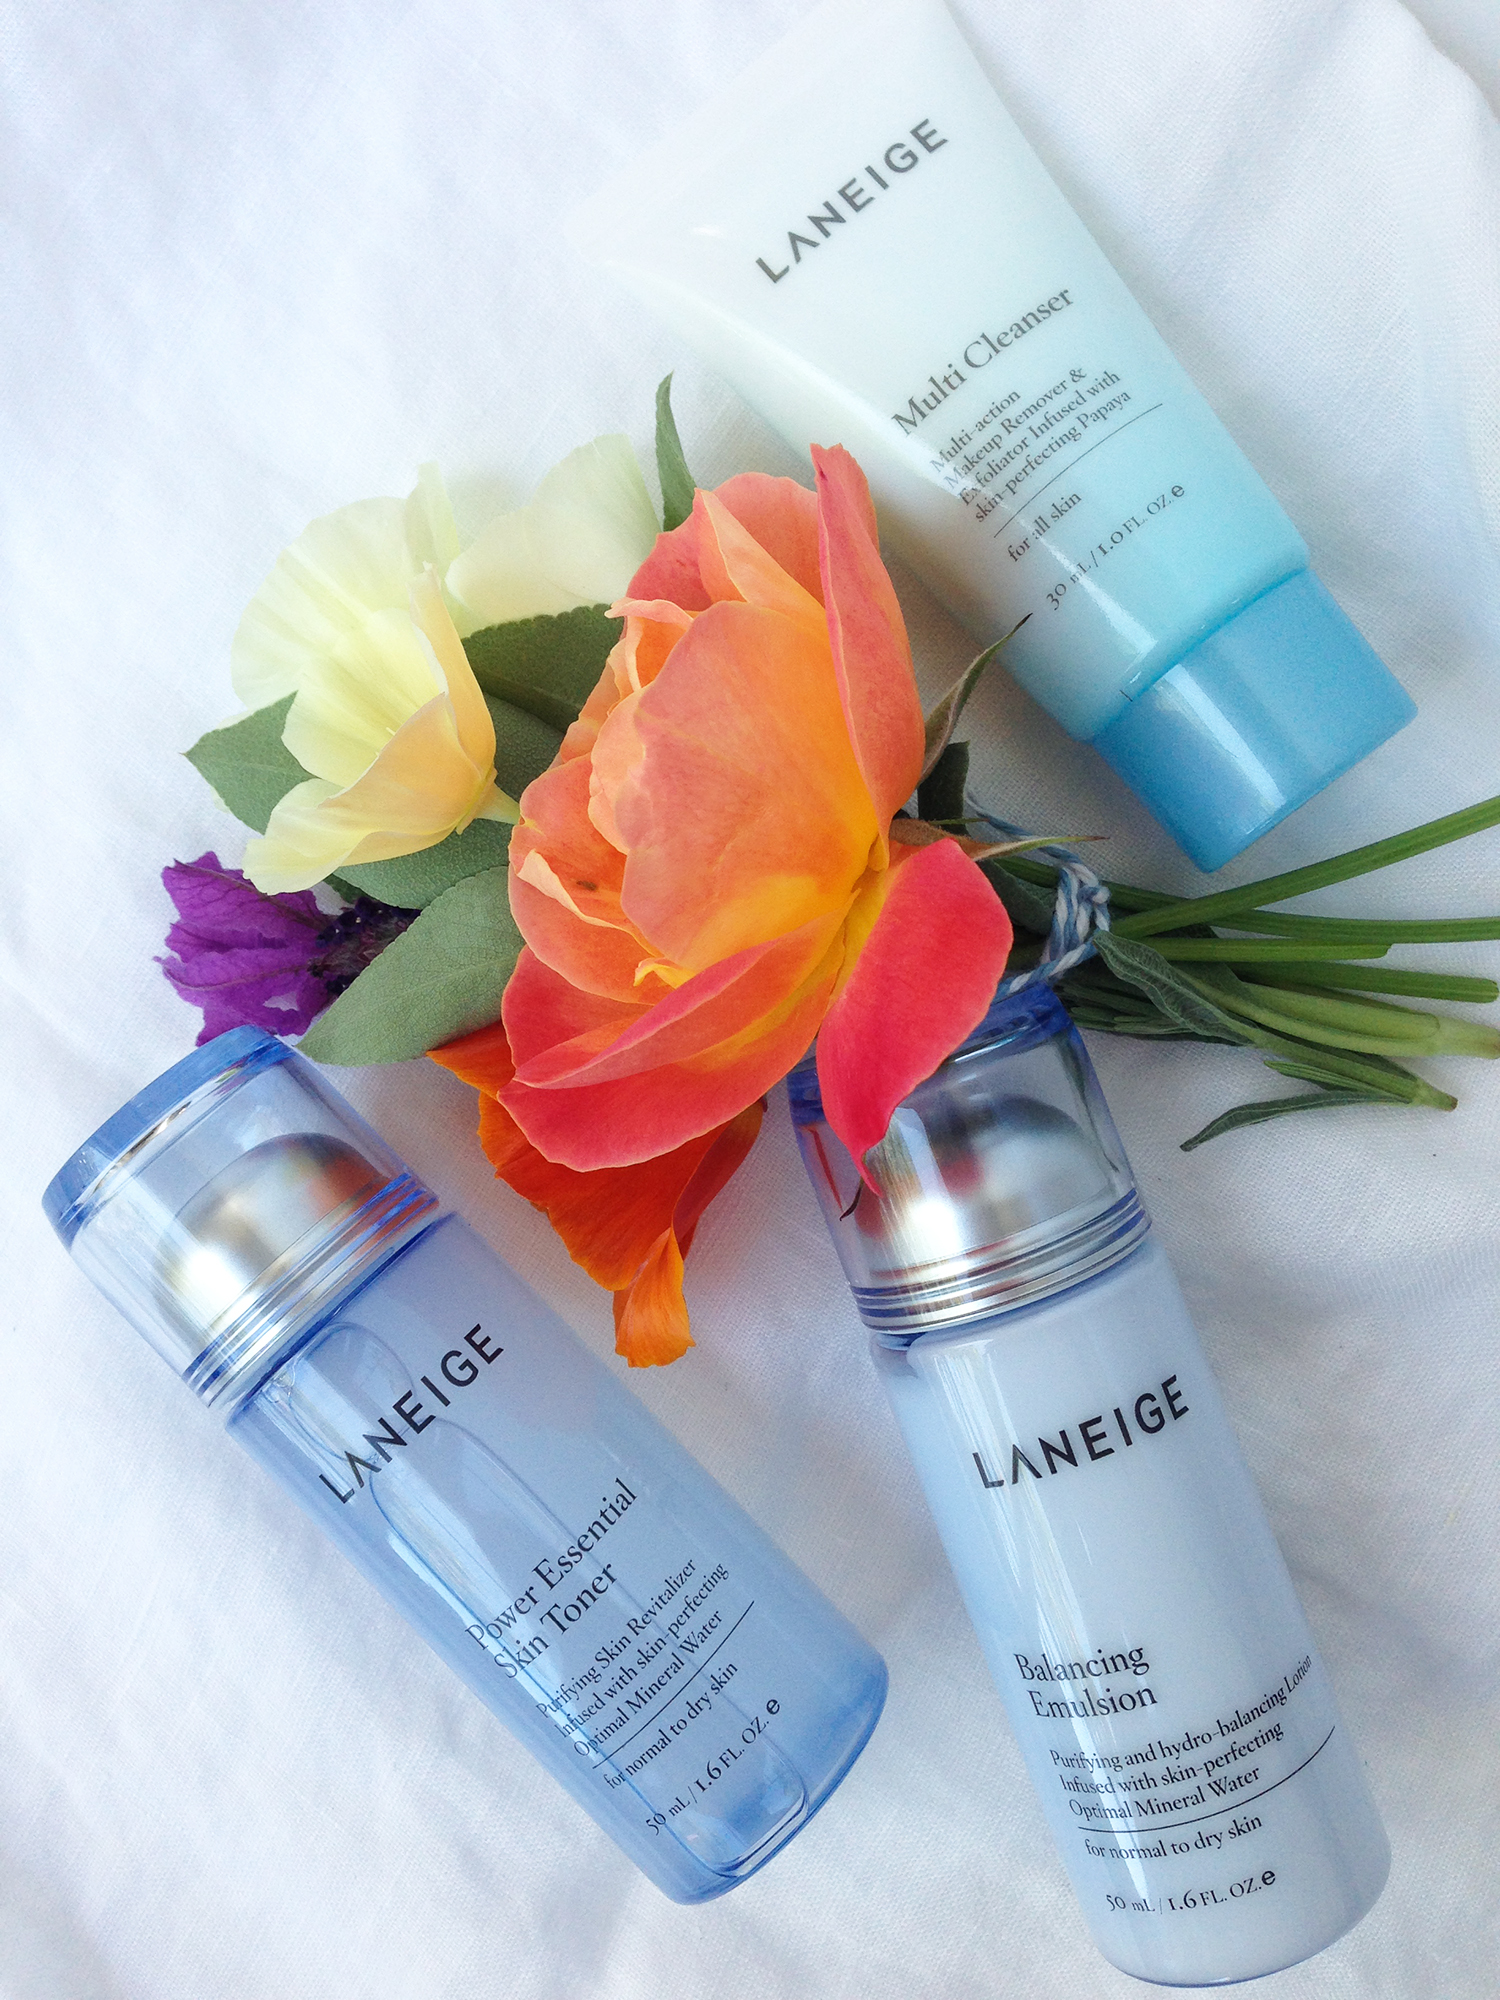 Laneige. At Target. Trying It.